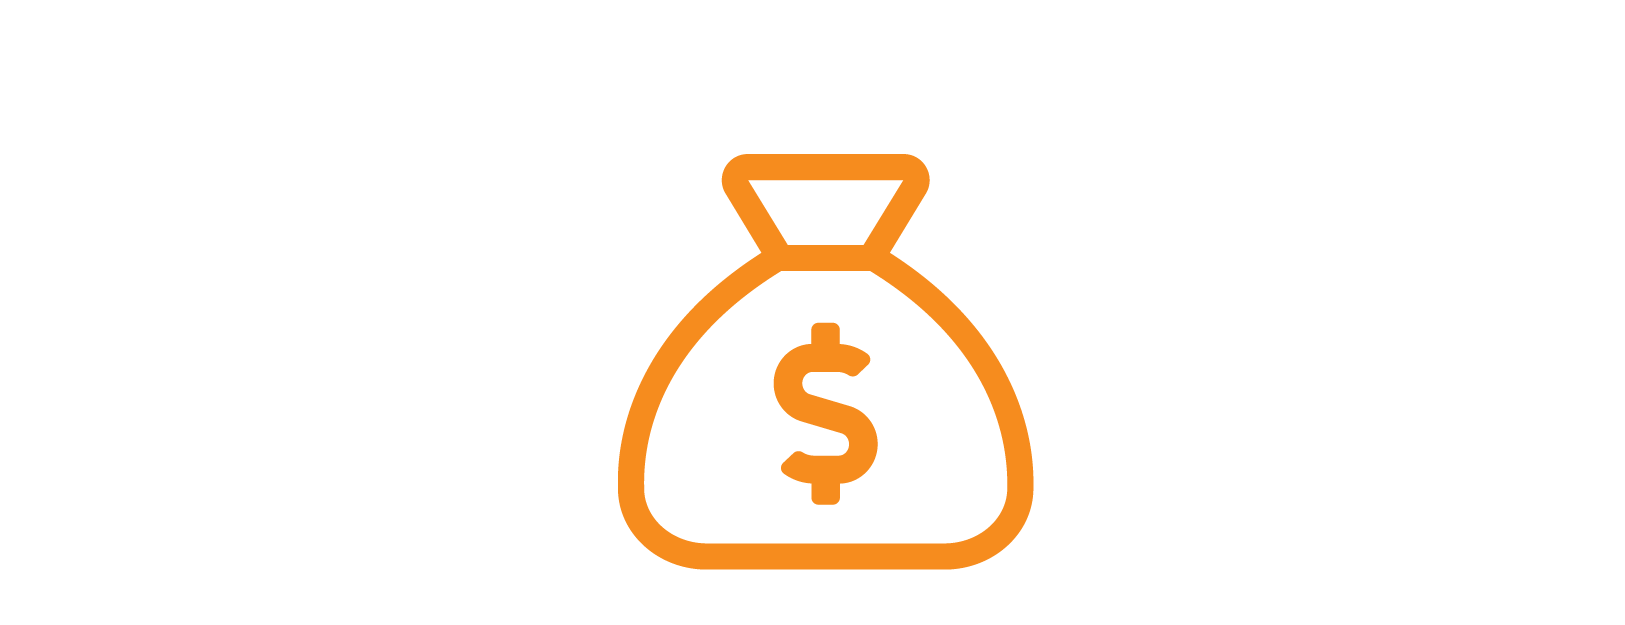 Breefly_2019-Site-Icon_Inserts-390x215_SackCash-01.png